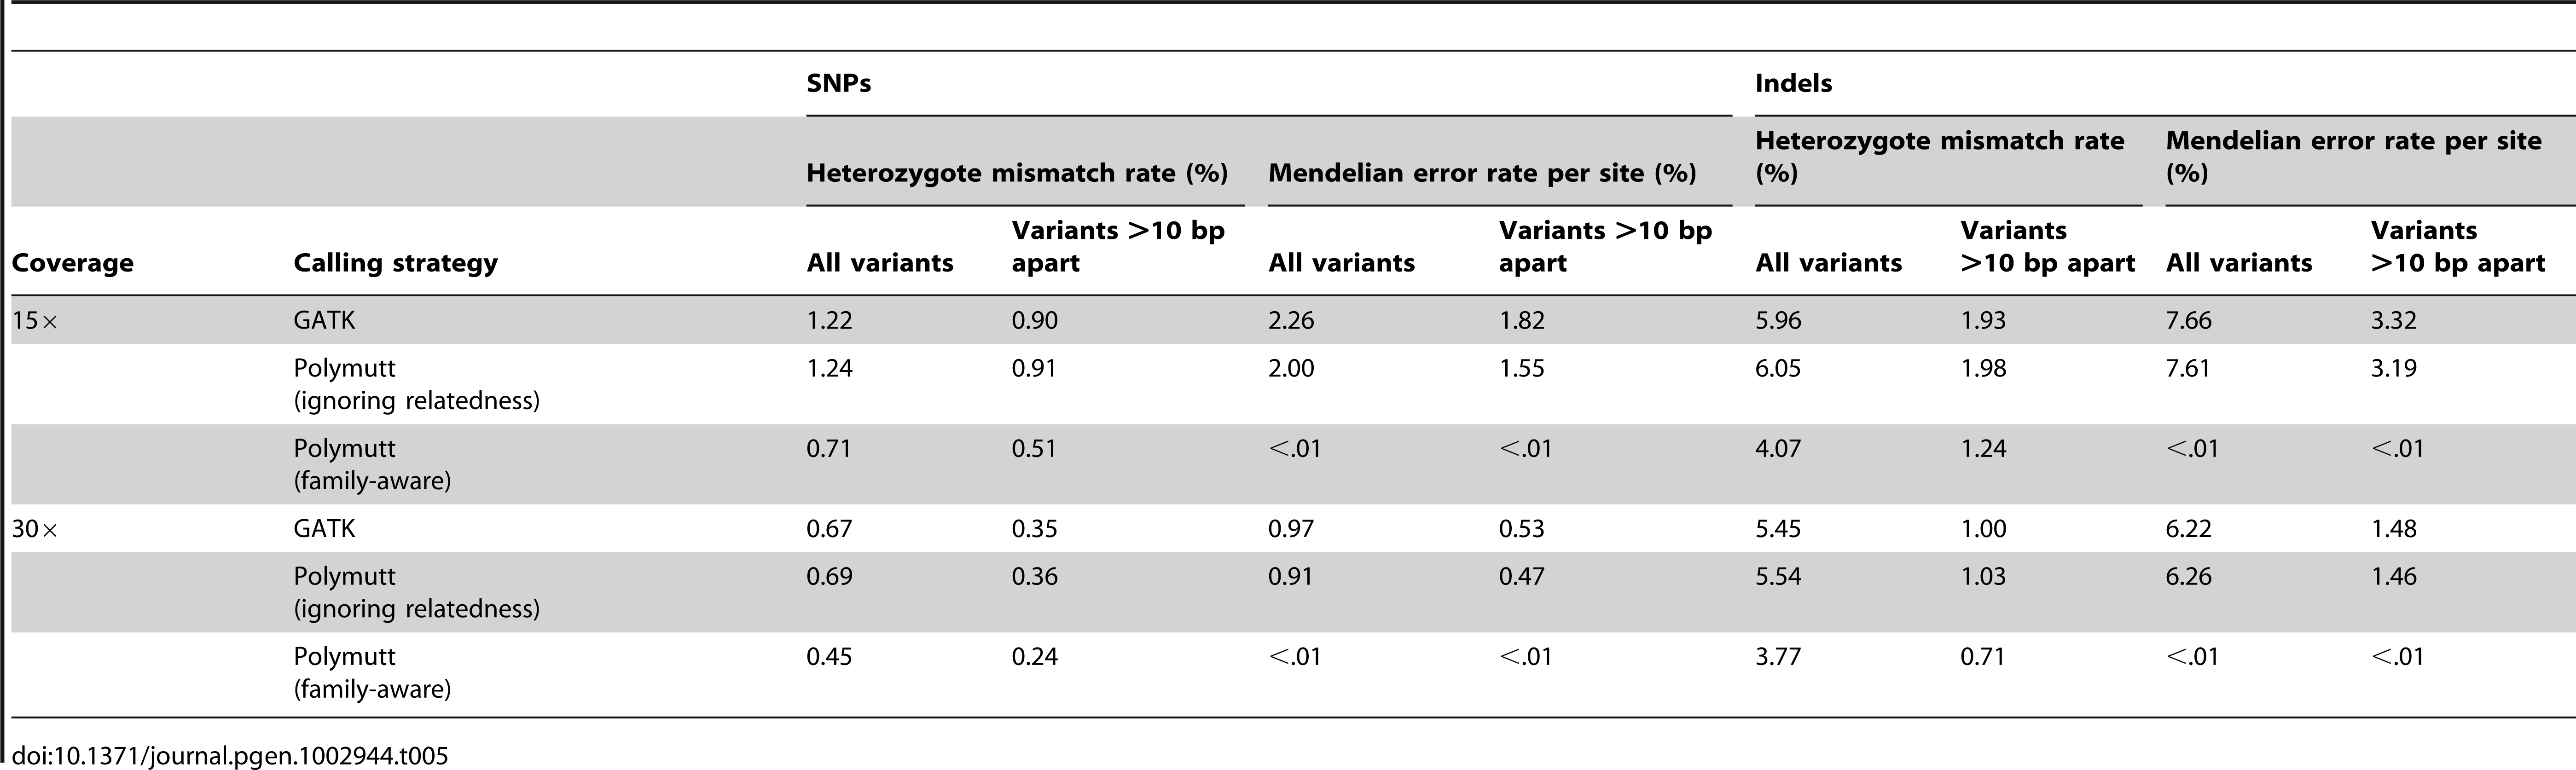 "Heterozygous mismatch rates (%) and Mendelian inconsistency rates (%) per site of call sets generated by PolyMutt (family-aware) and the standard approaches using PolyMutt (ignoring relatedness) and GATK from empirically calibrated alignments of simulated reads with base quality of Q20 in the pedigree shown in <em class=""ref"">Figure 1</em>."